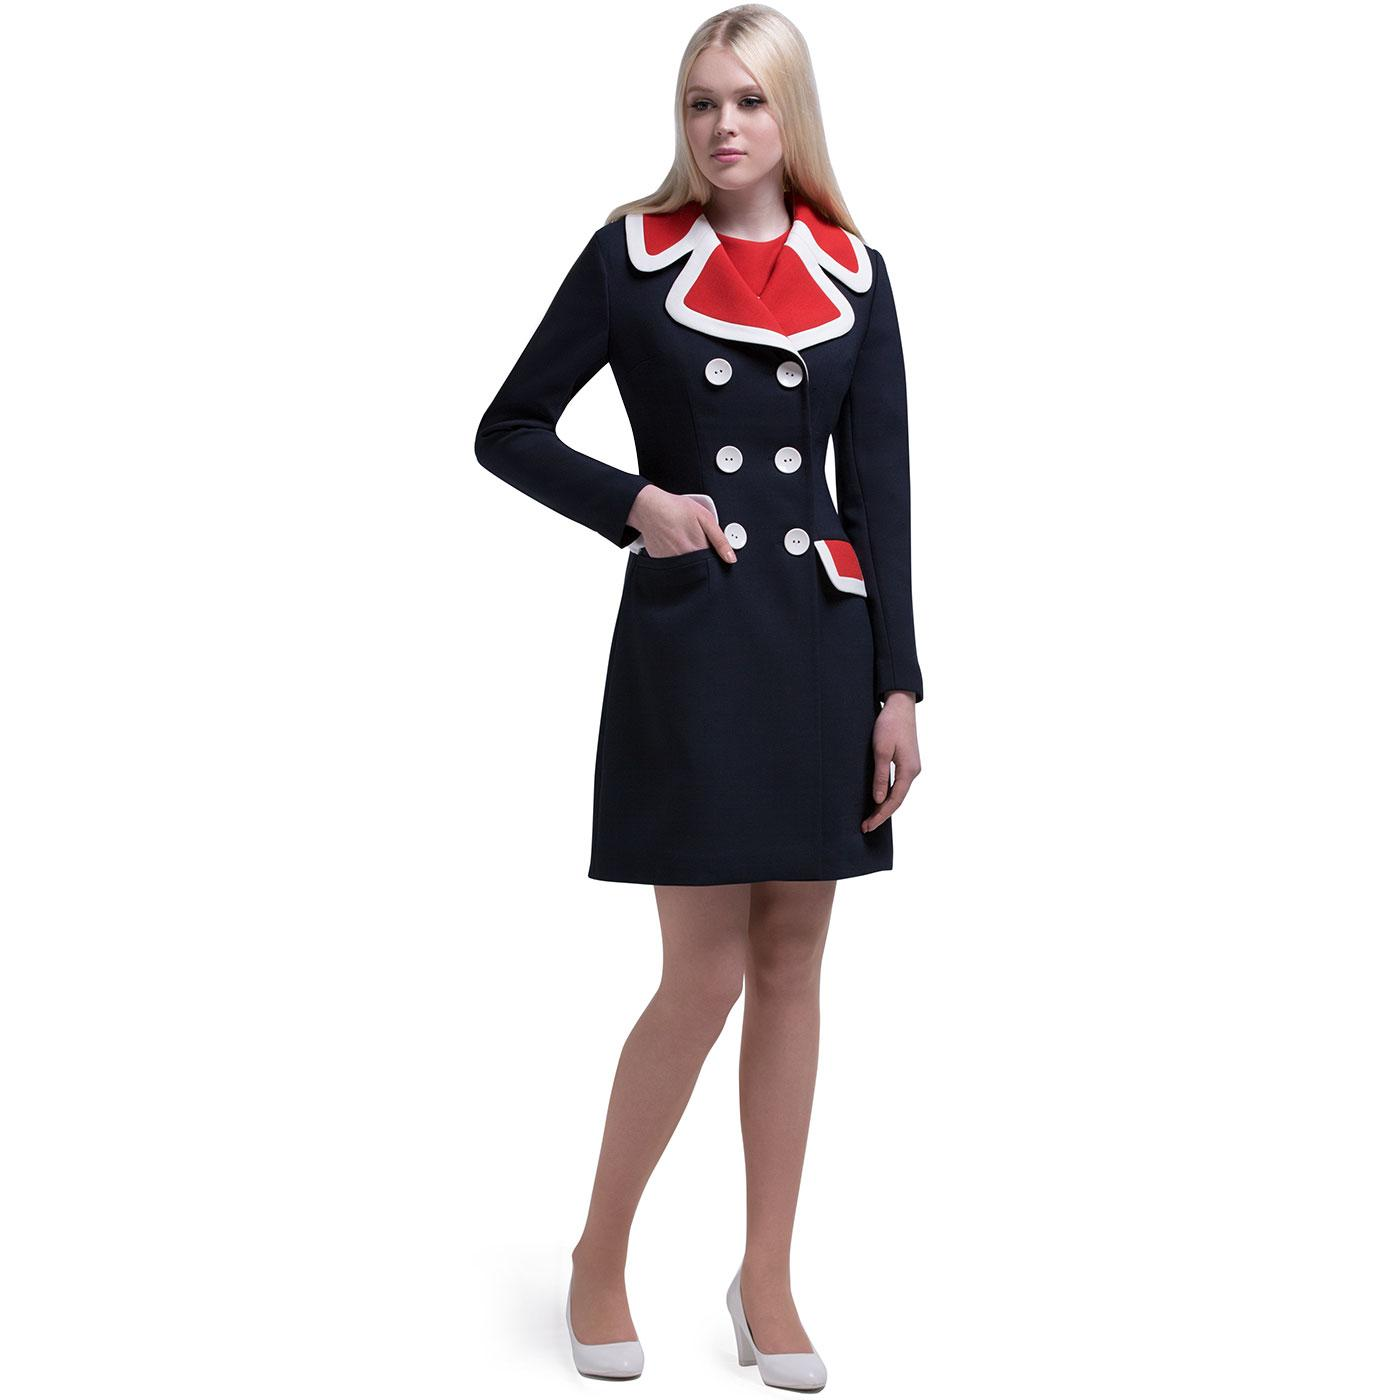 MARMALADE Mod Double Breasted 2-Tone Collar Coat